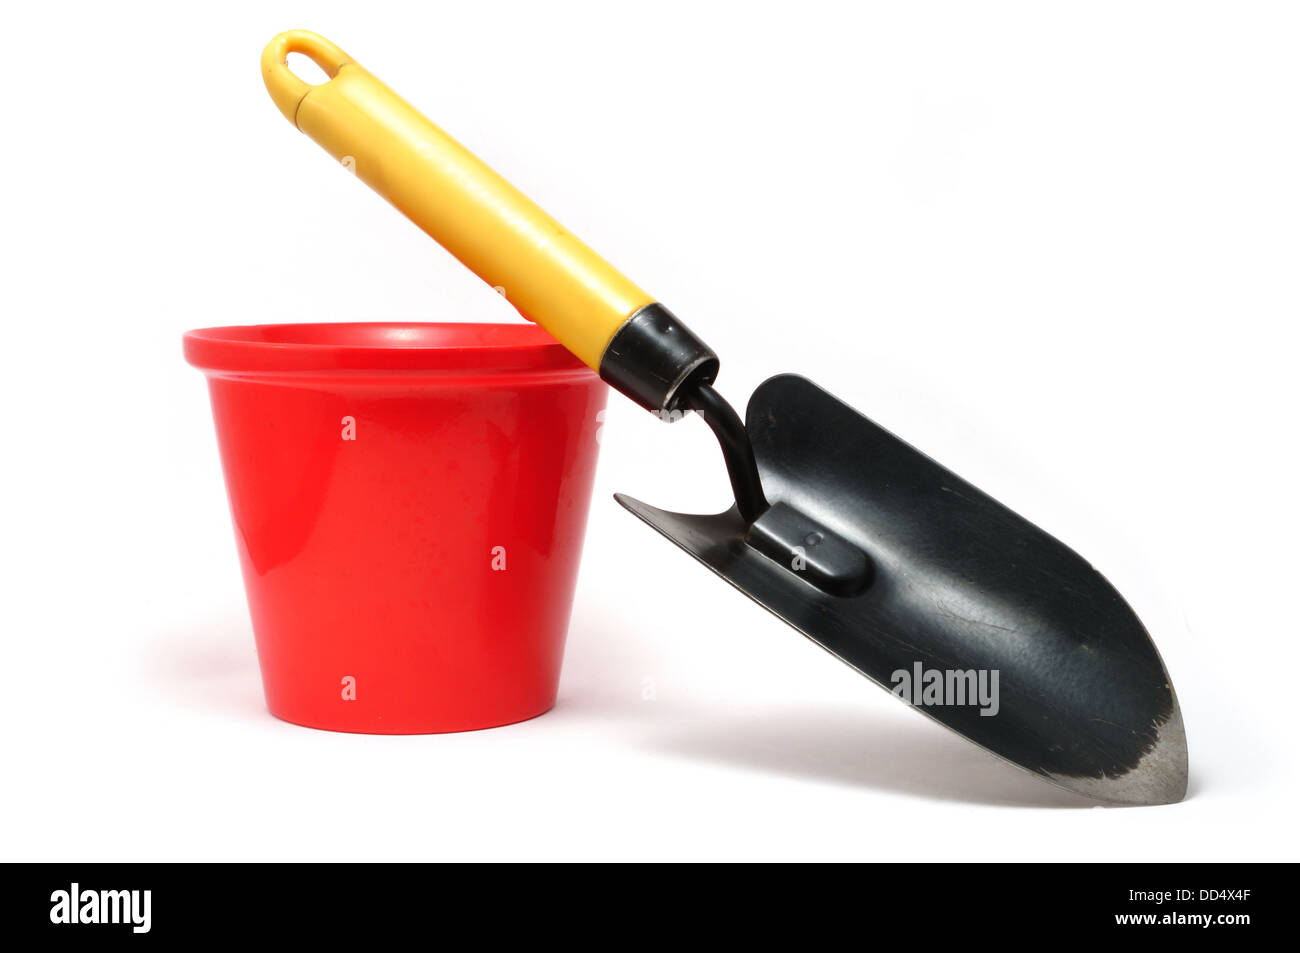 Garden Trowel and Red Ceramic Flower Pot Isolated On A White Background - Stock Image